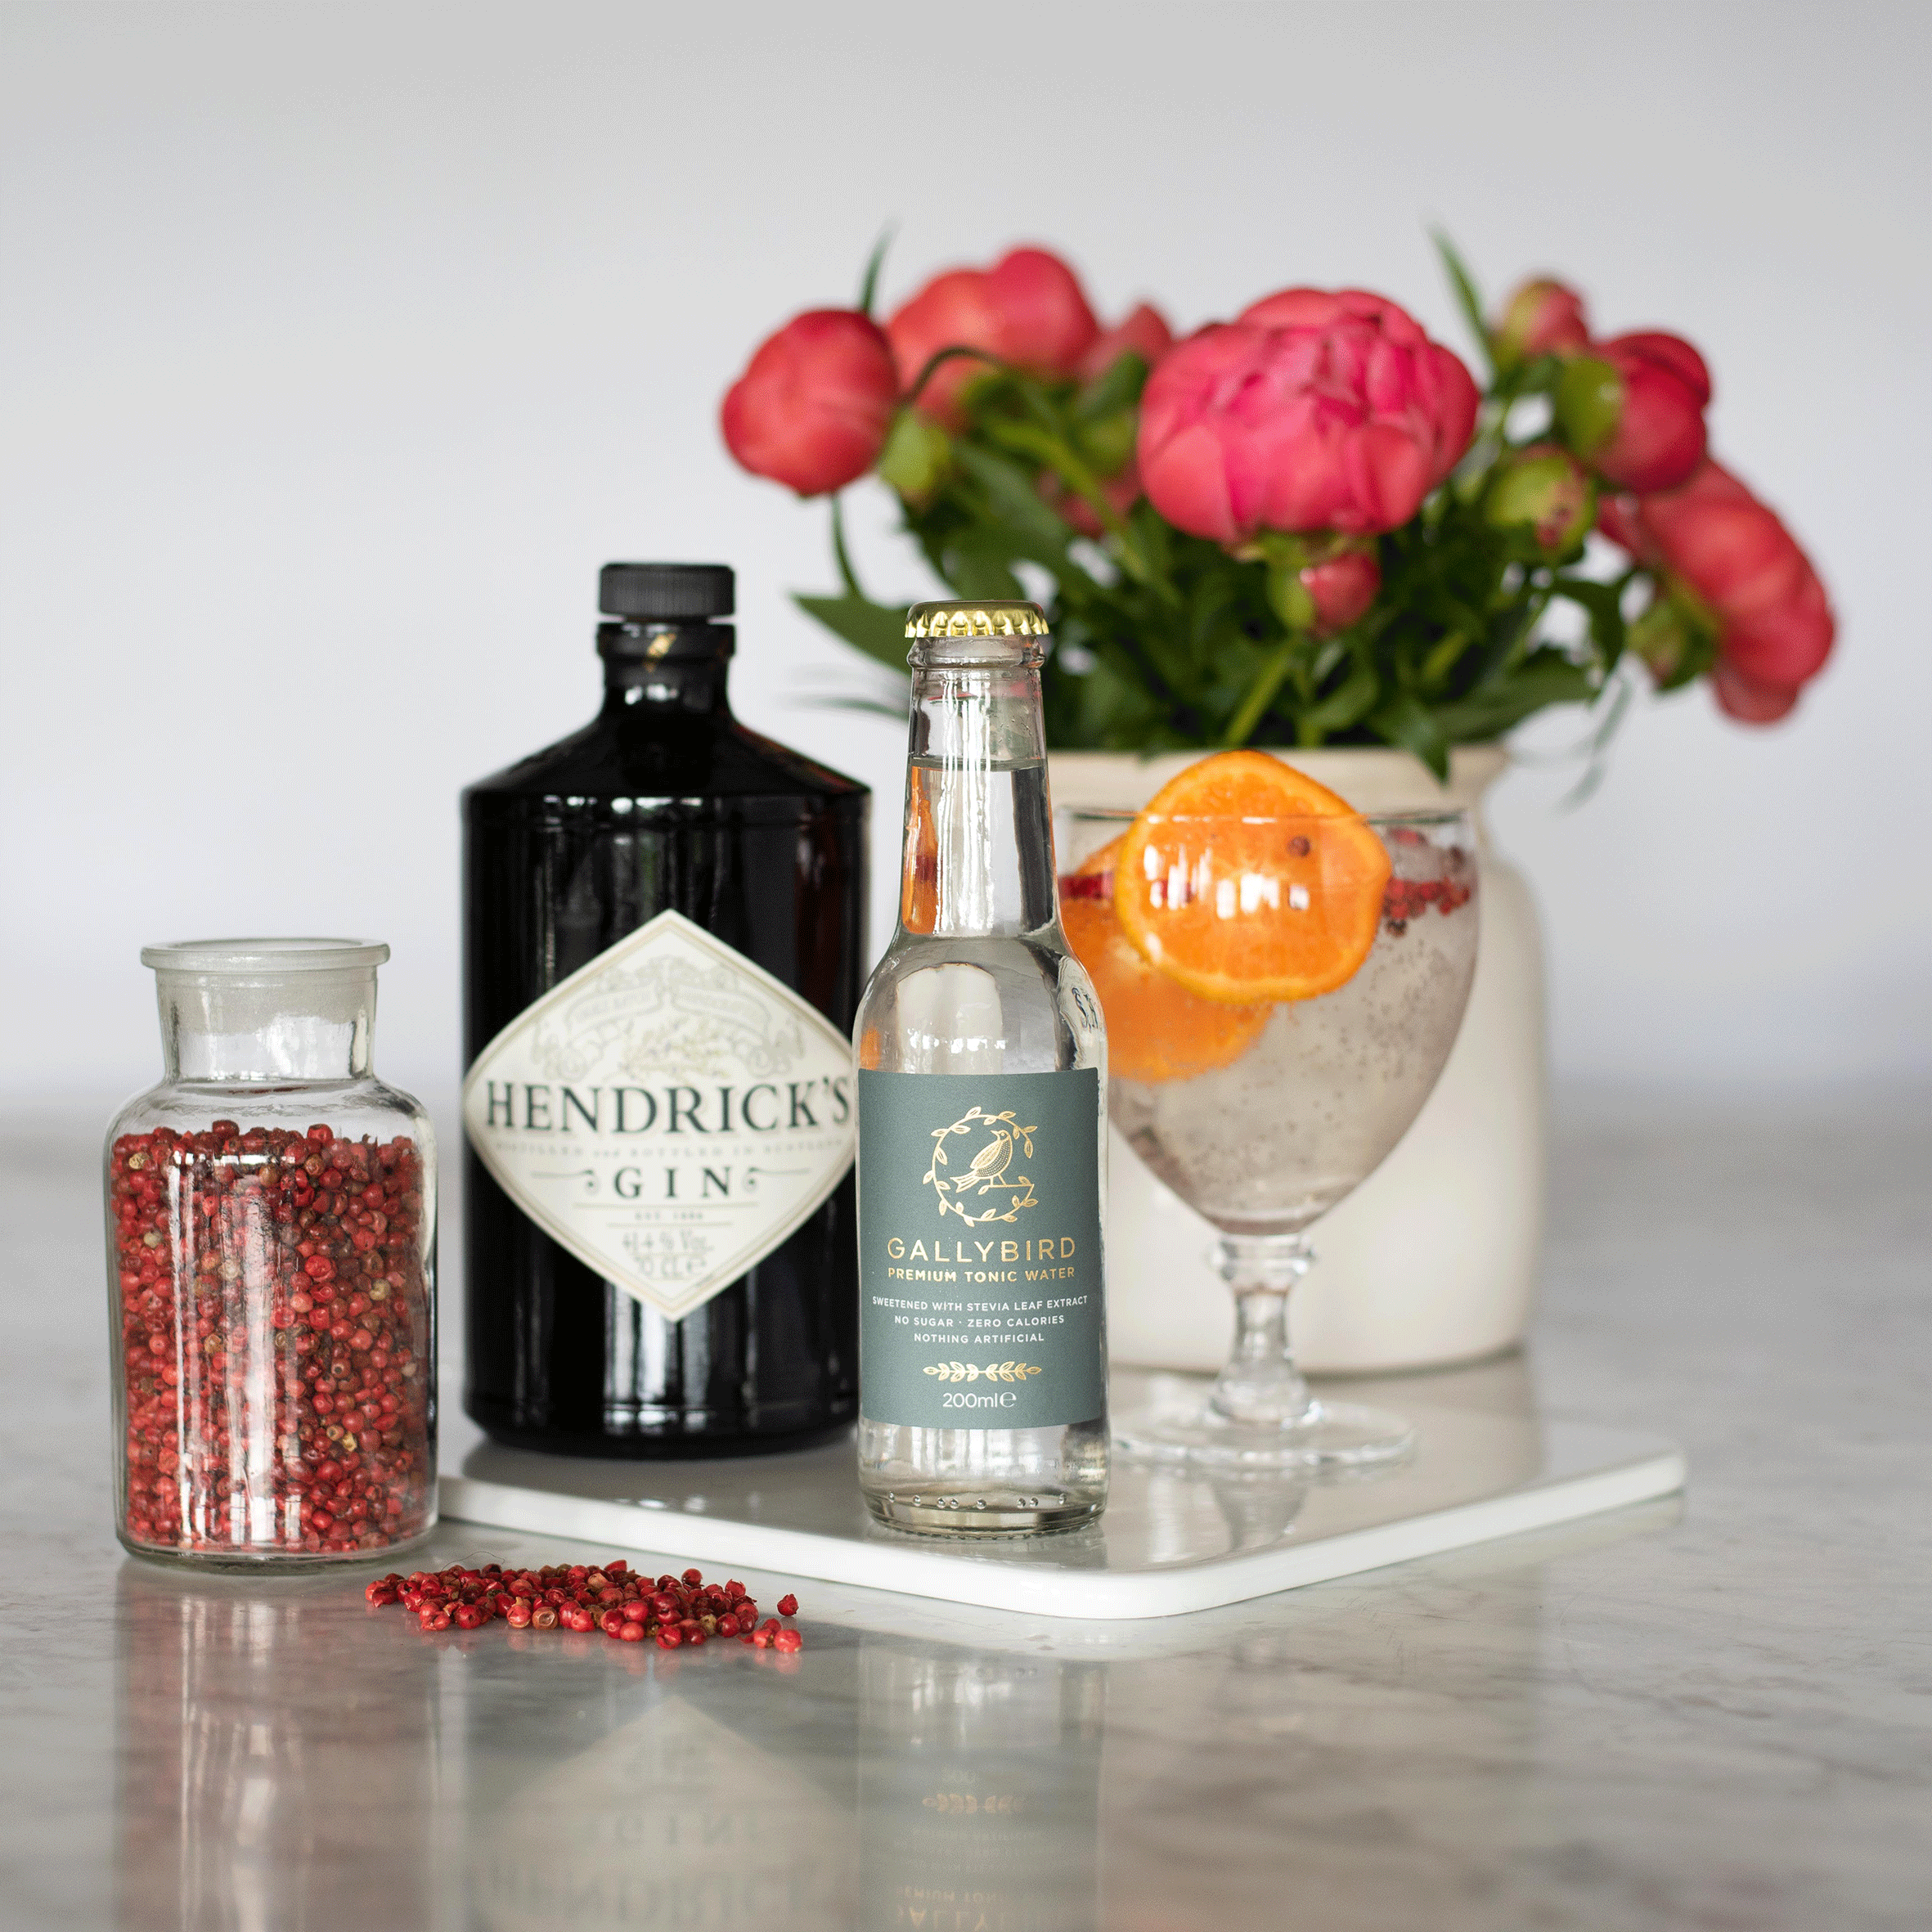 Gallybird and Hendricks Gin - Hendricks has an unusual flavour and method of distilling that Gallybird enhances and allows you to enjoy poured over ice with a couple of slices of orange and a scattering of pink peppercorns.